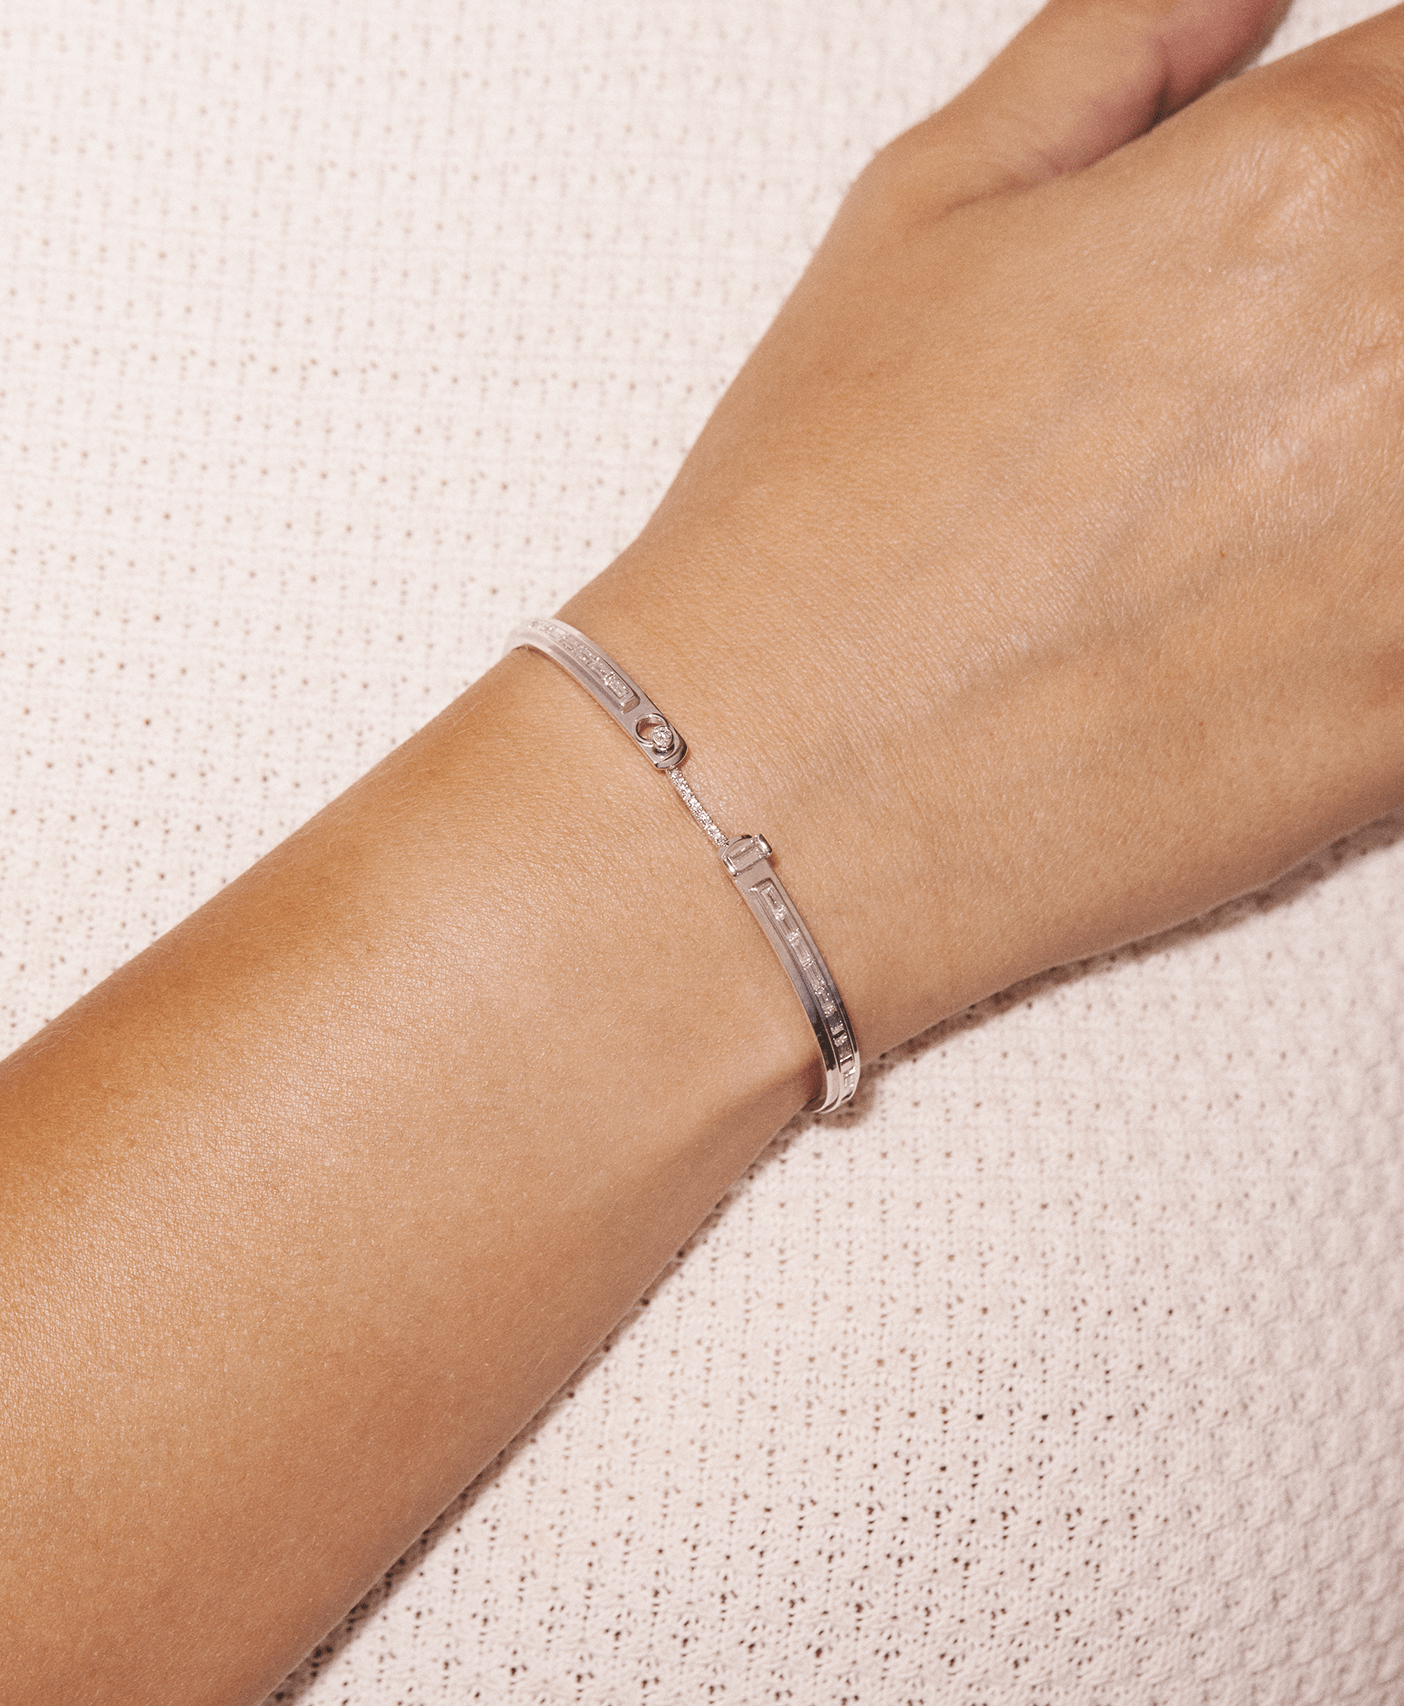 My Best Friend's Wedding Mood Bangle - Nouvel Heritage